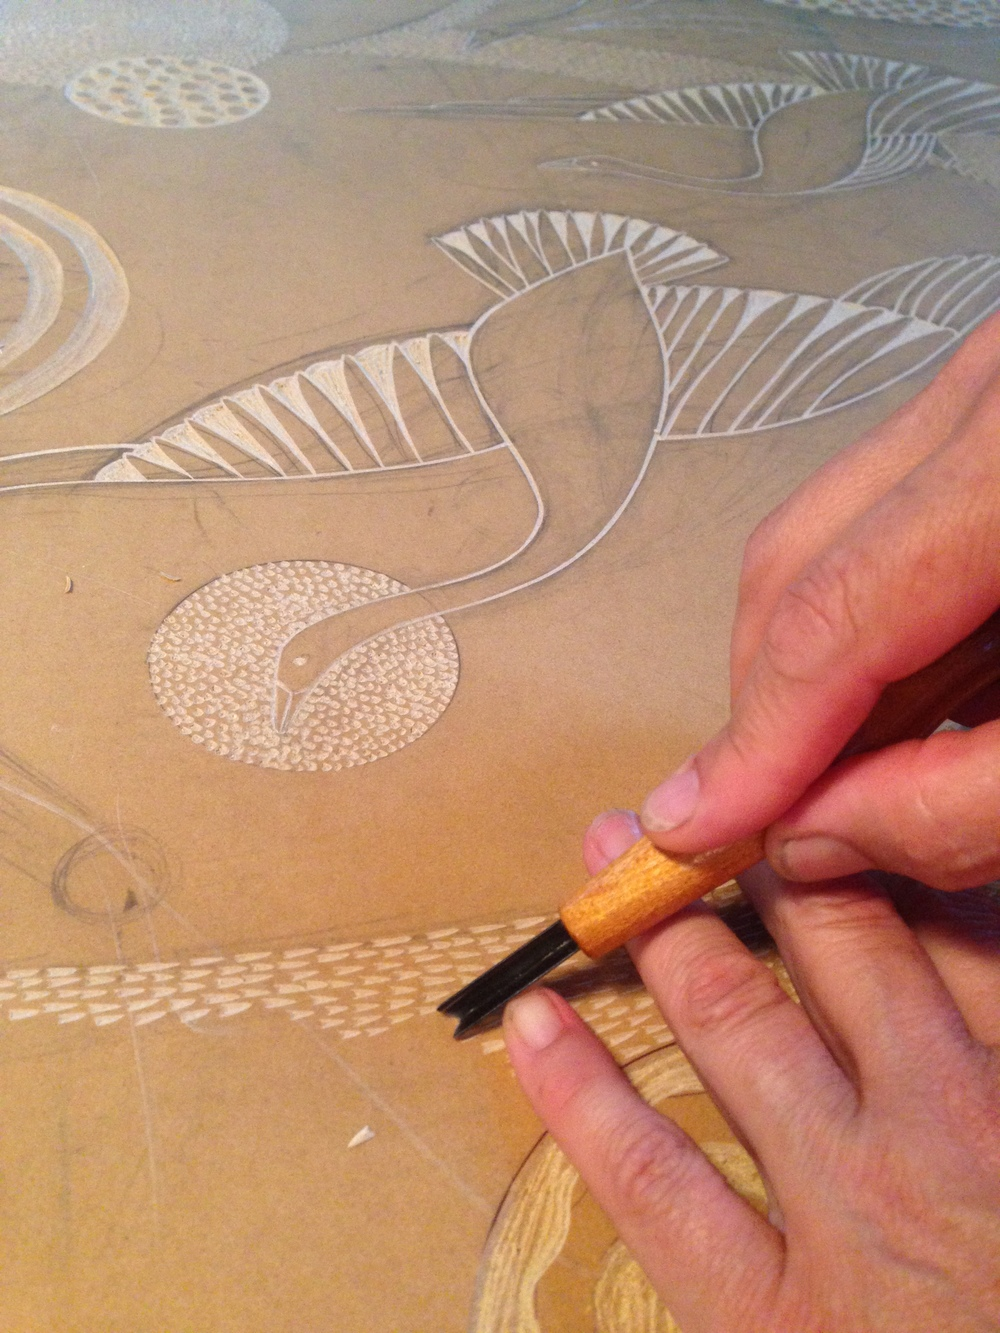 carving the linoleum for Swooping and Swirling